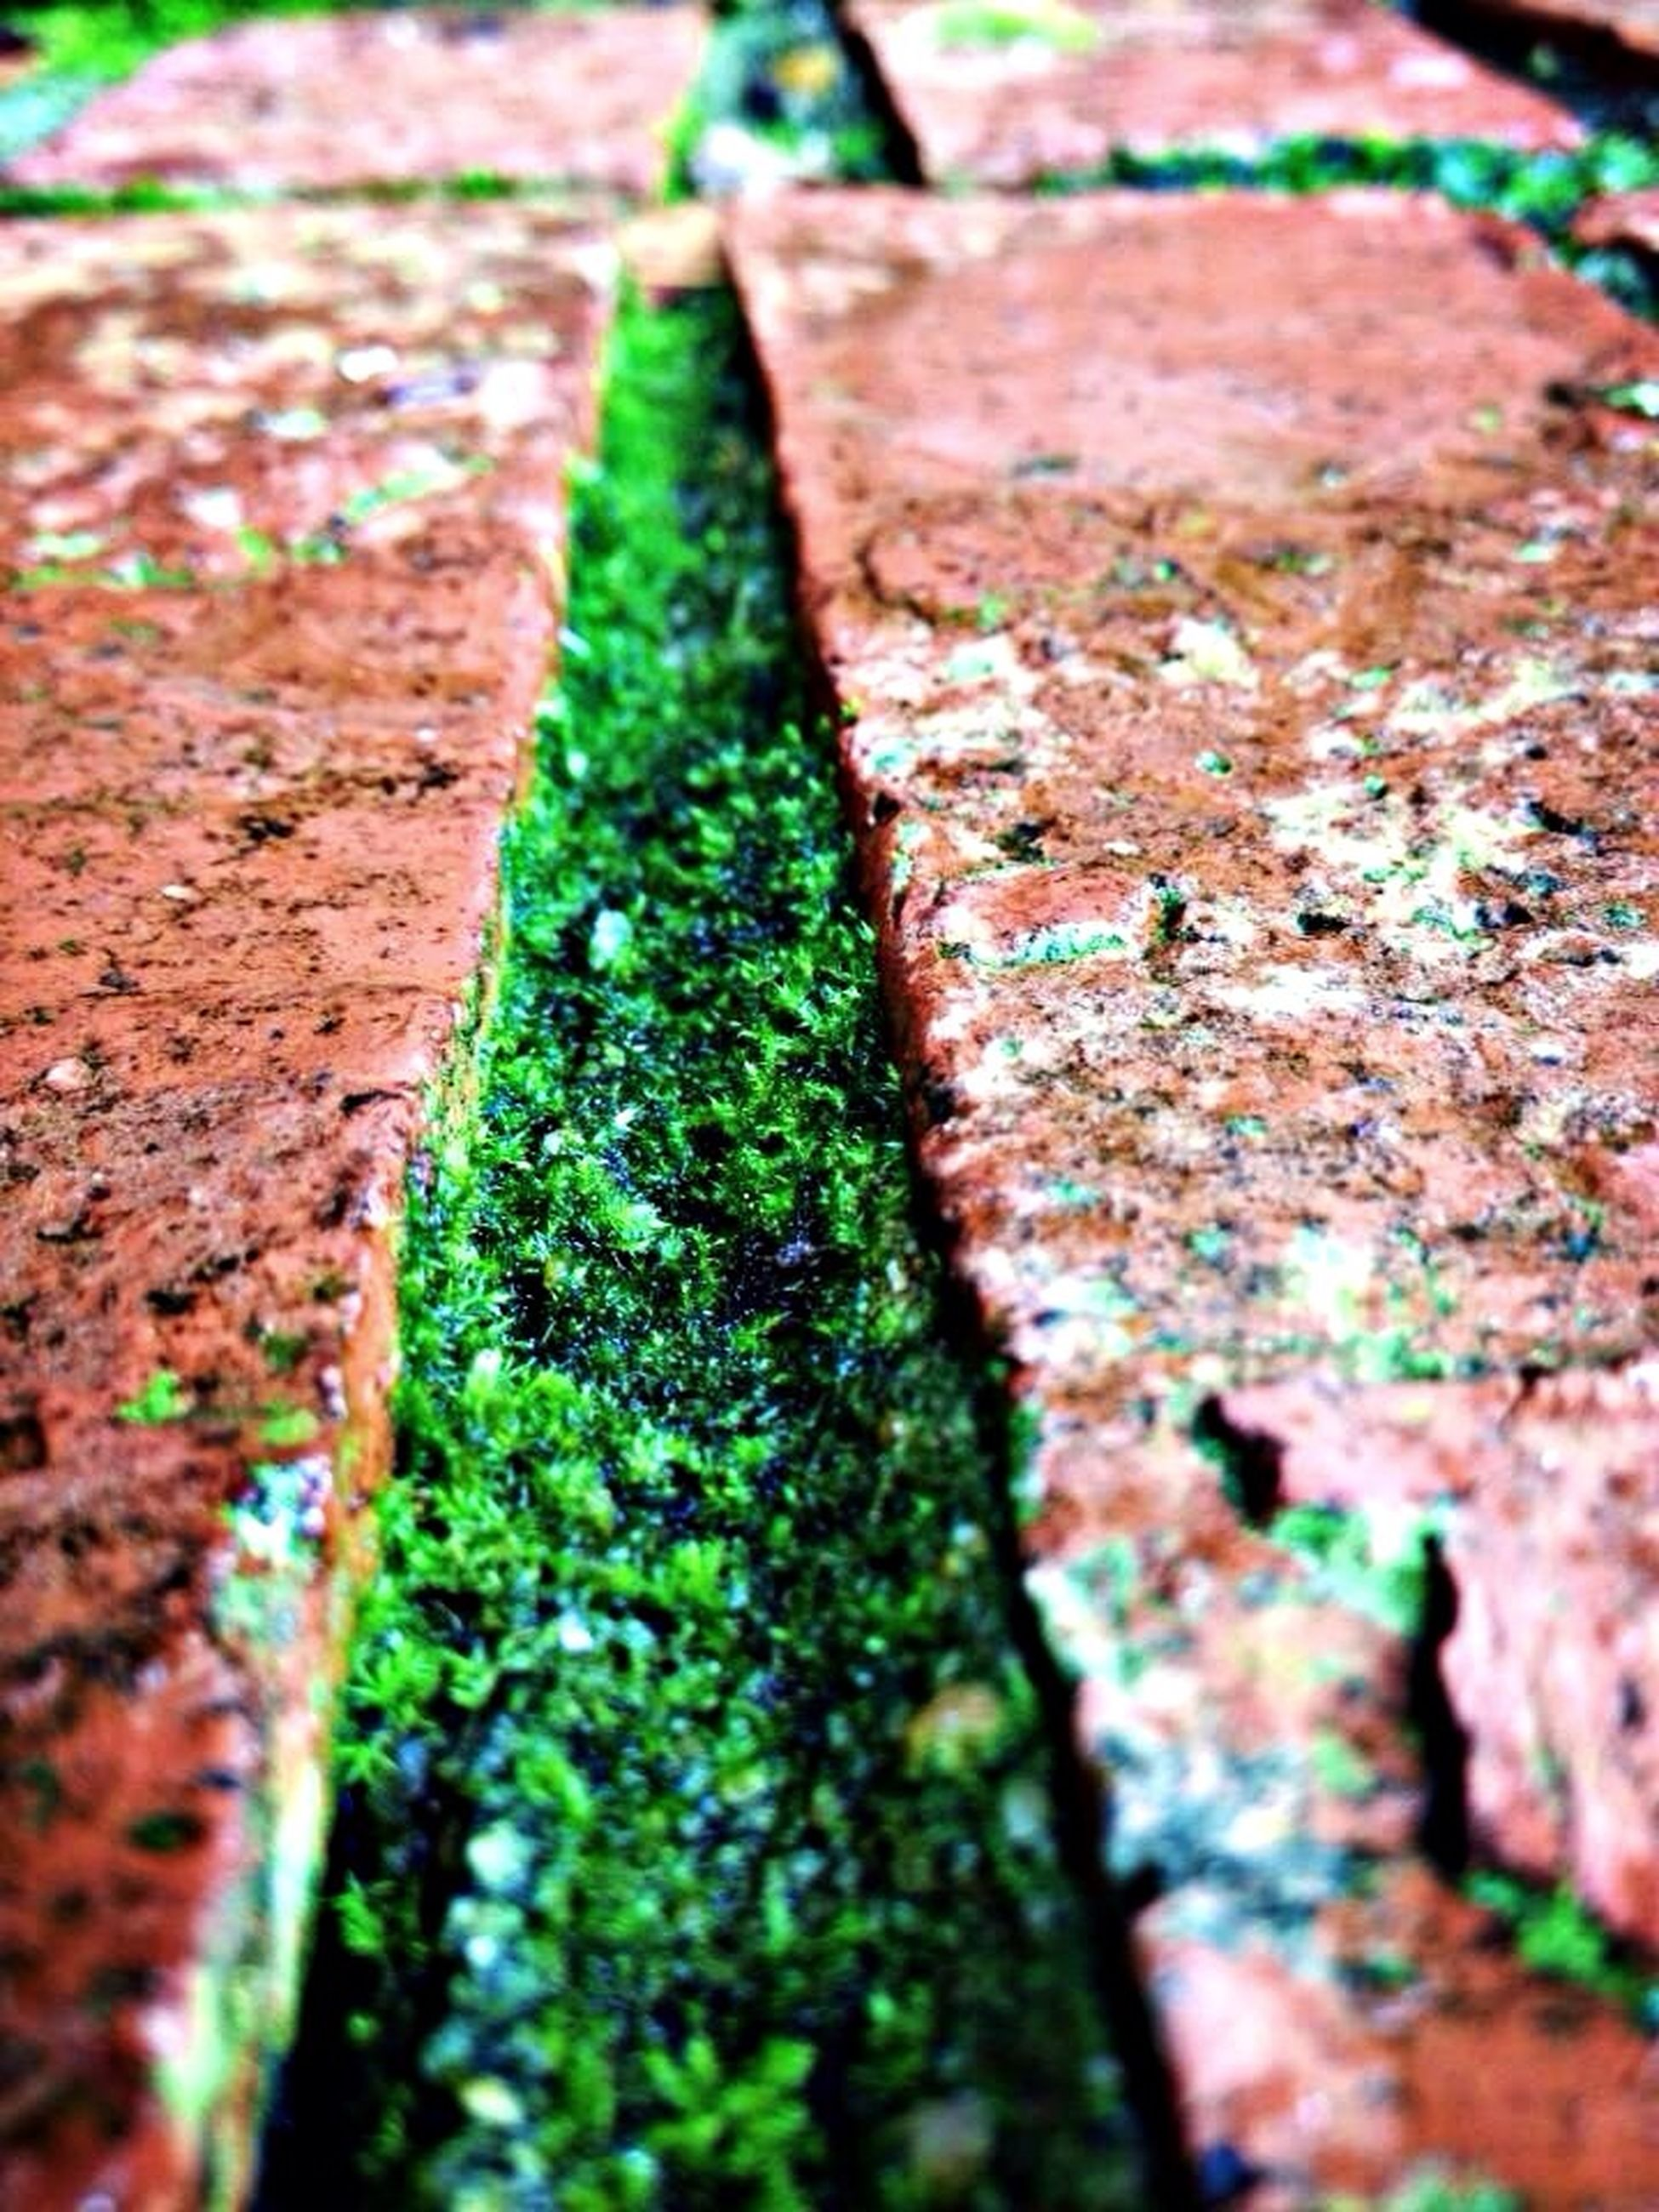 moss, selective focus, textured, close-up, green color, growth, rough, leaf, nature, tree, focus on foreground, day, outdoors, plant, tree trunk, no people, weathered, high angle view, wood - material, wall - building feature